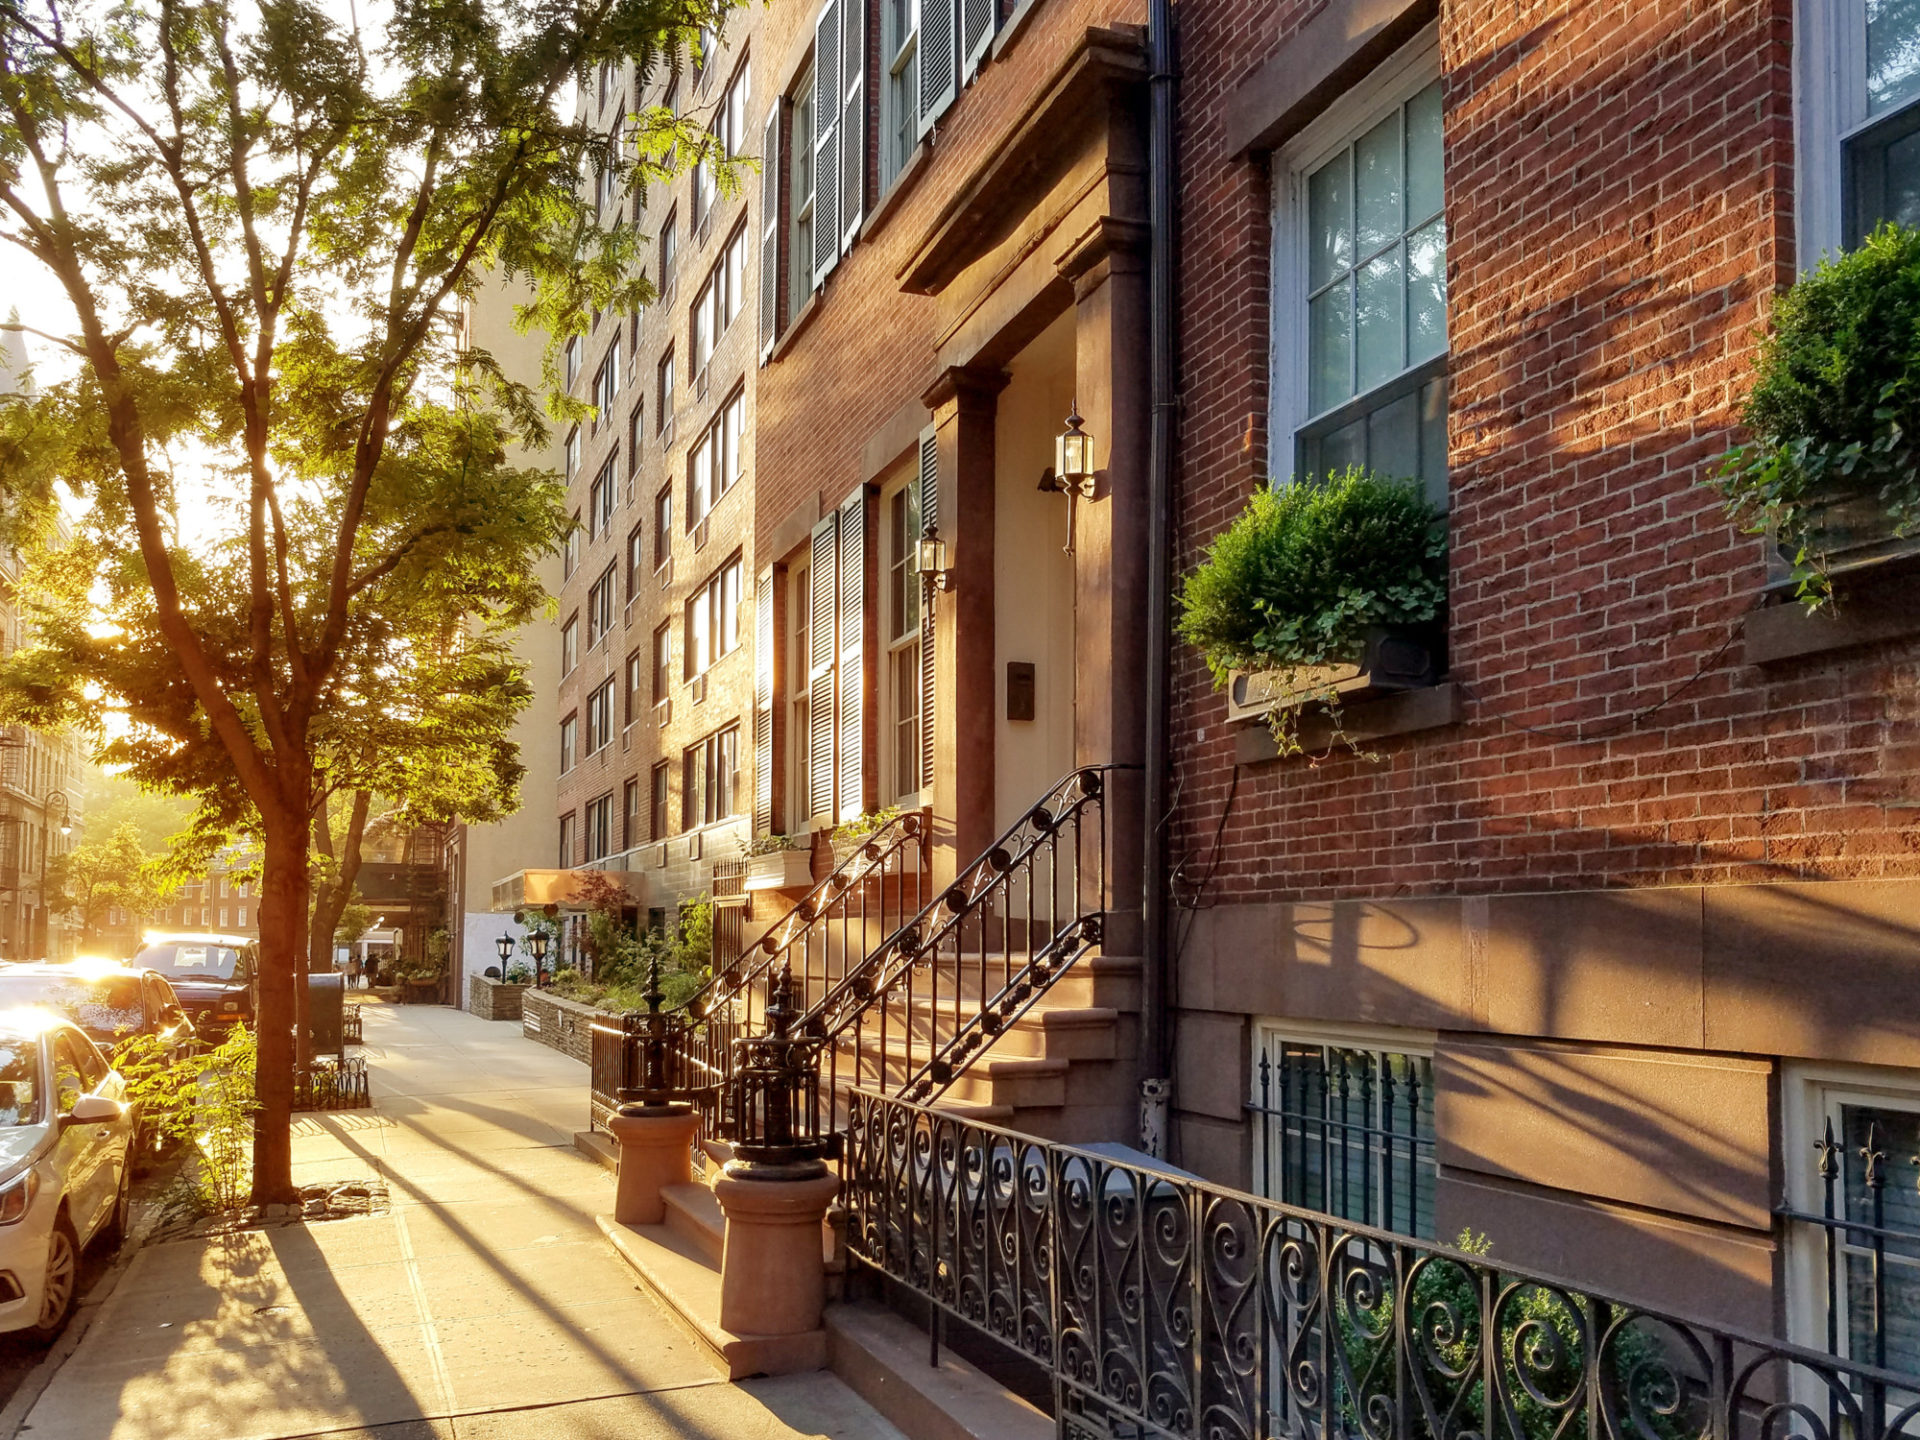 Tips for First-Time New York Real Estate Investors